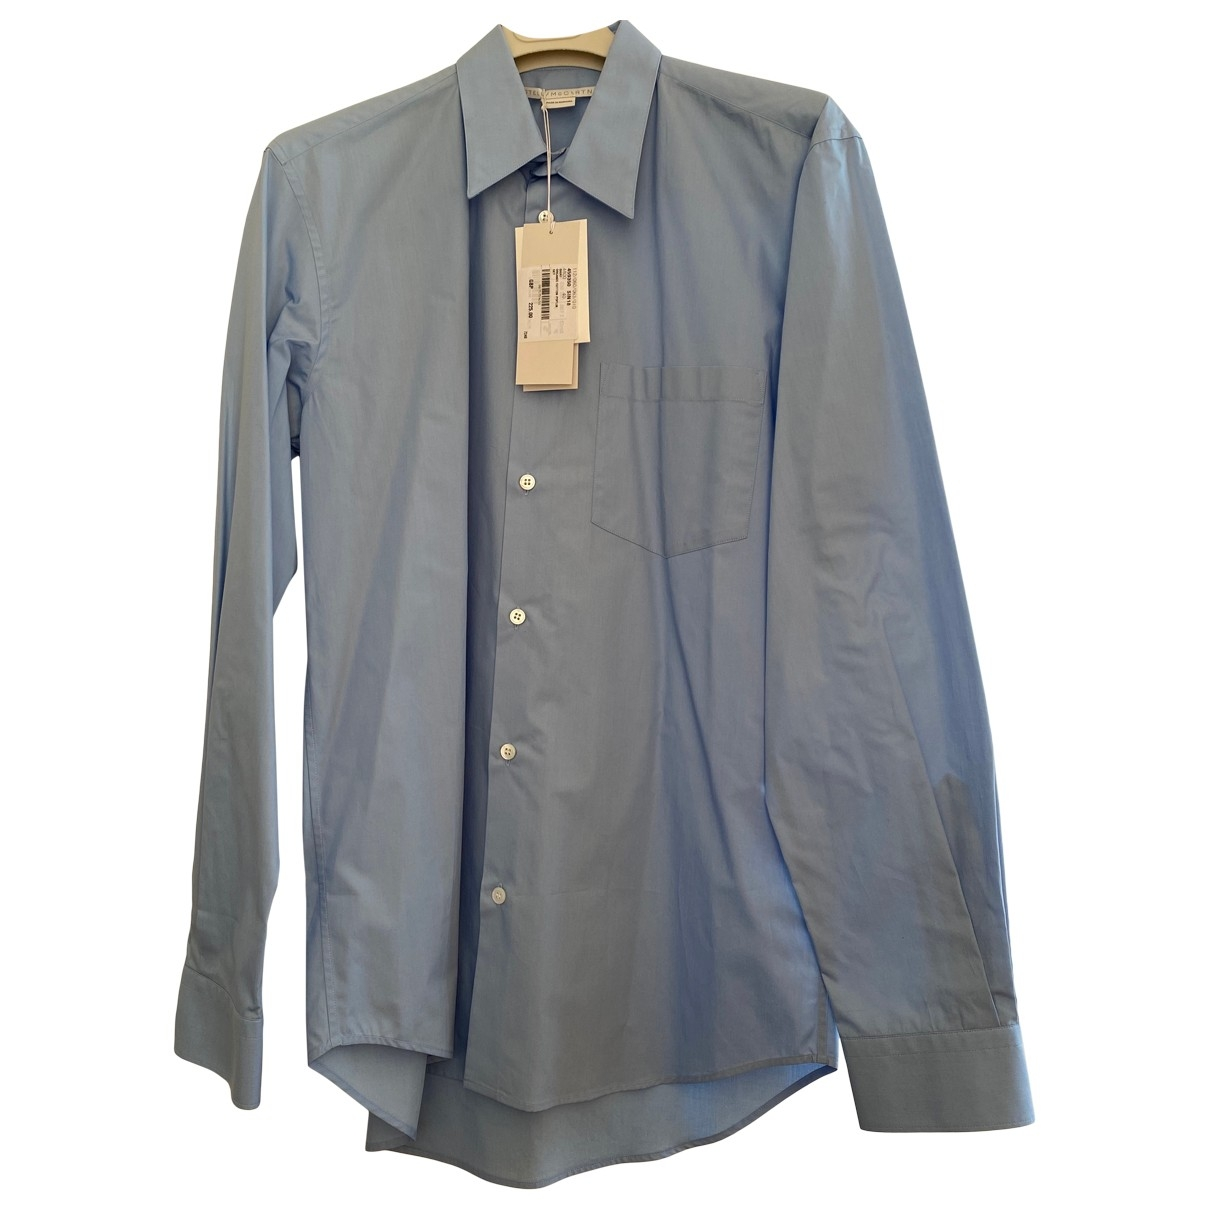 Stella Mccartney \N Blue Cotton Shirts for Men 40 EU (tour de cou / collar)